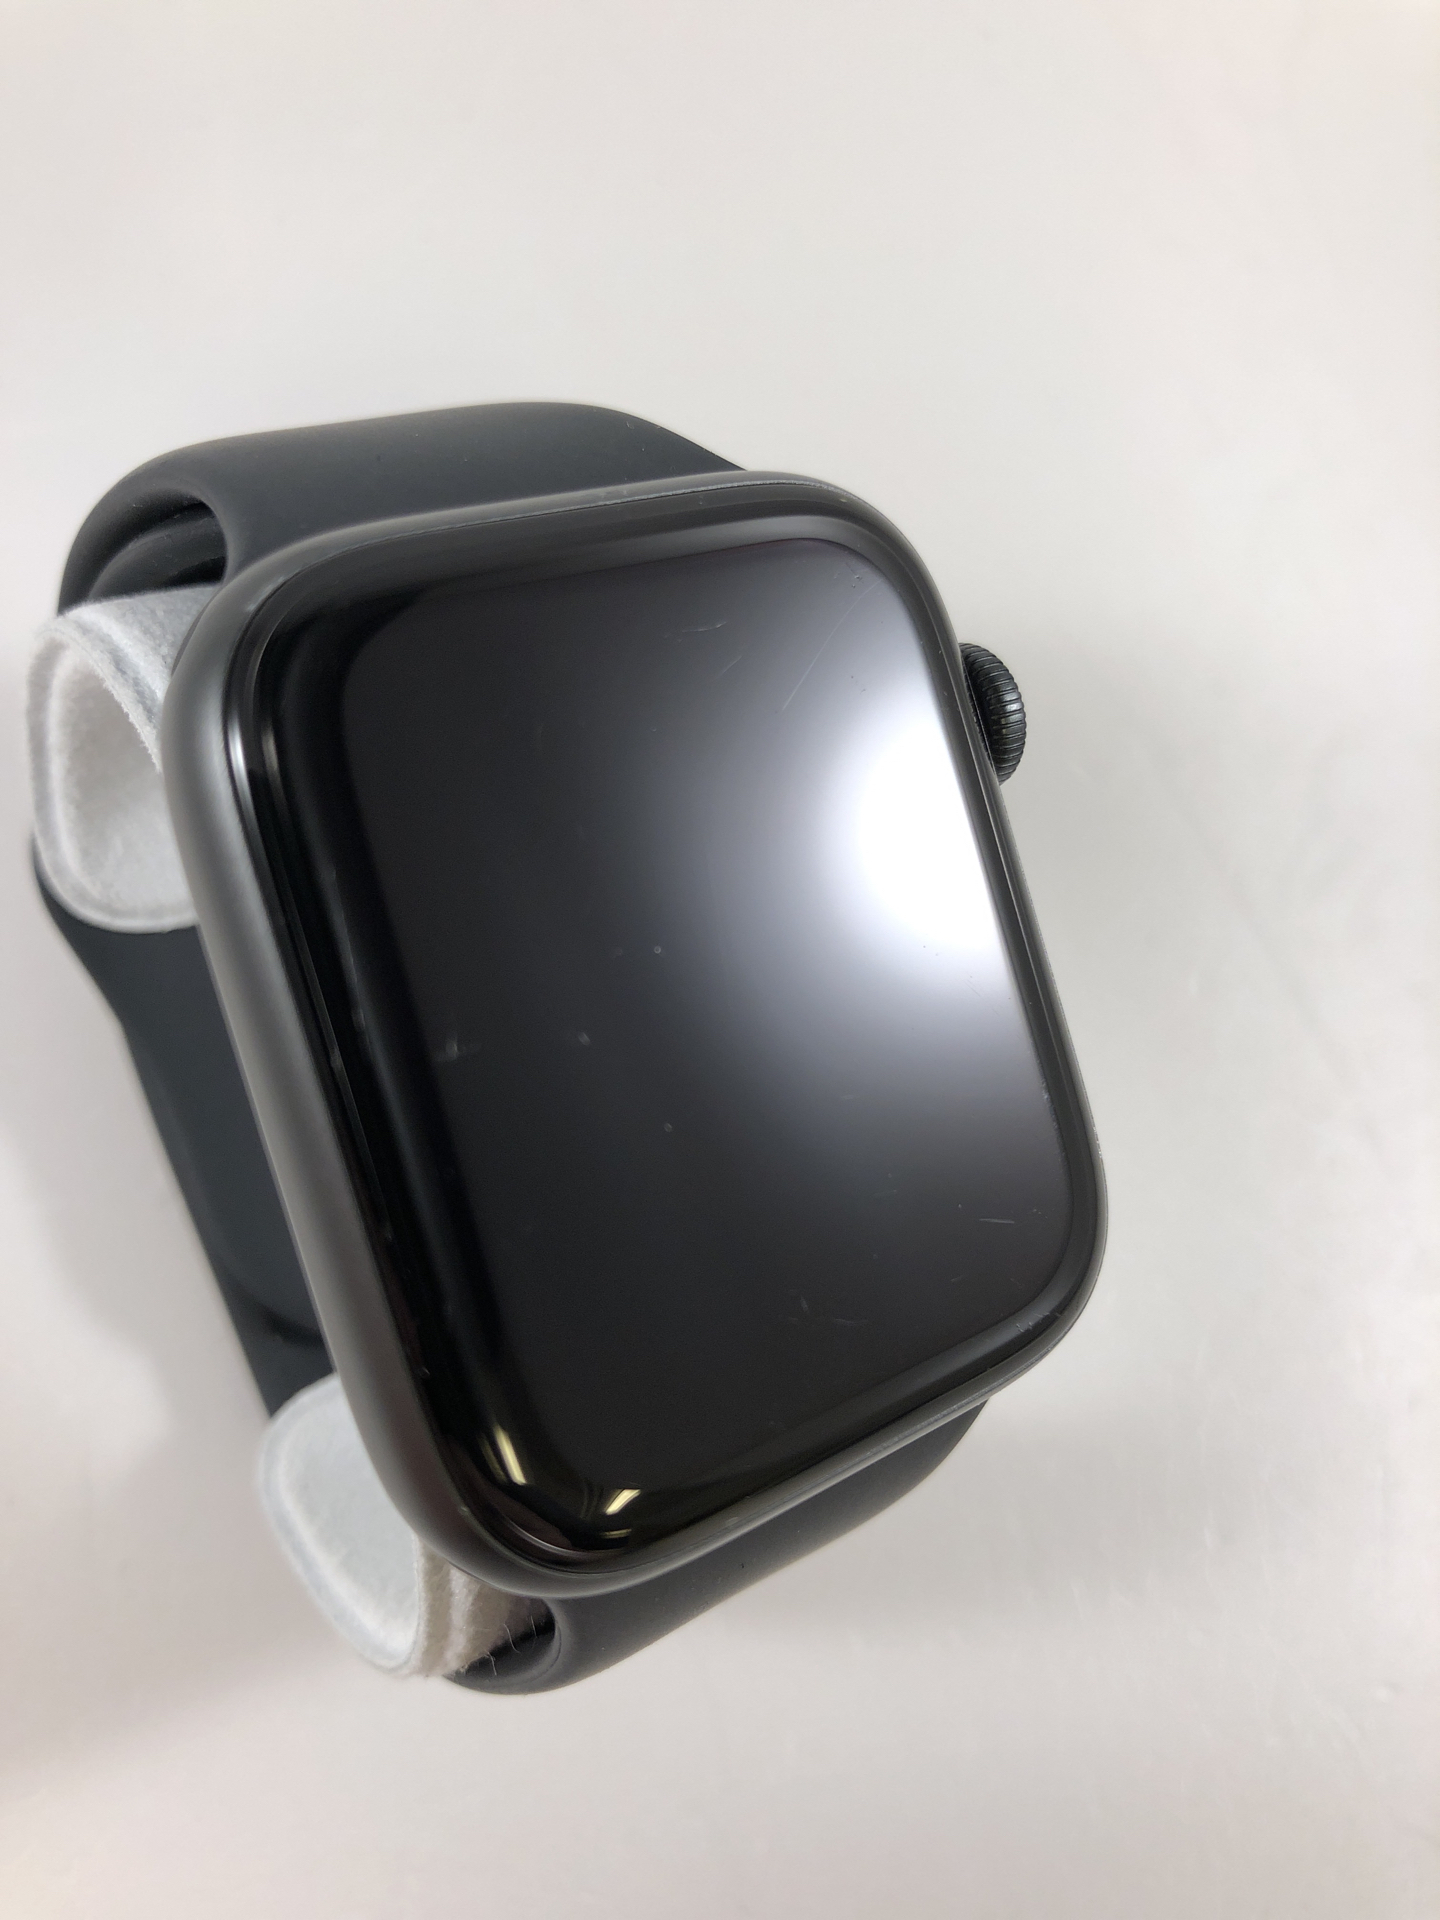 Watch Series 5 Aluminum (44mm), Space Gray, bild 2